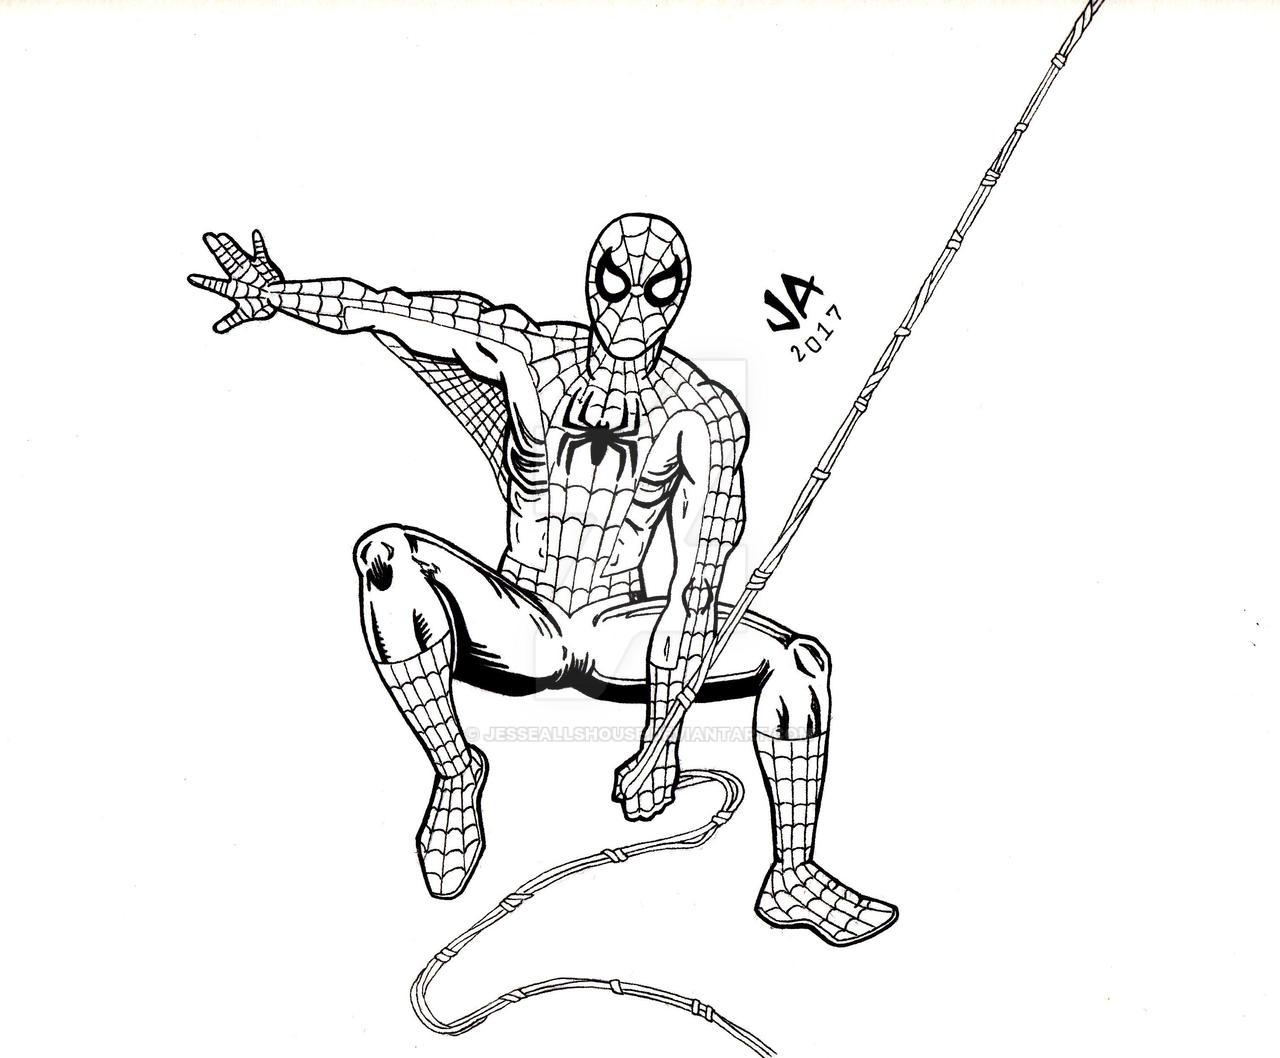 Spider-Man Pen and Ink